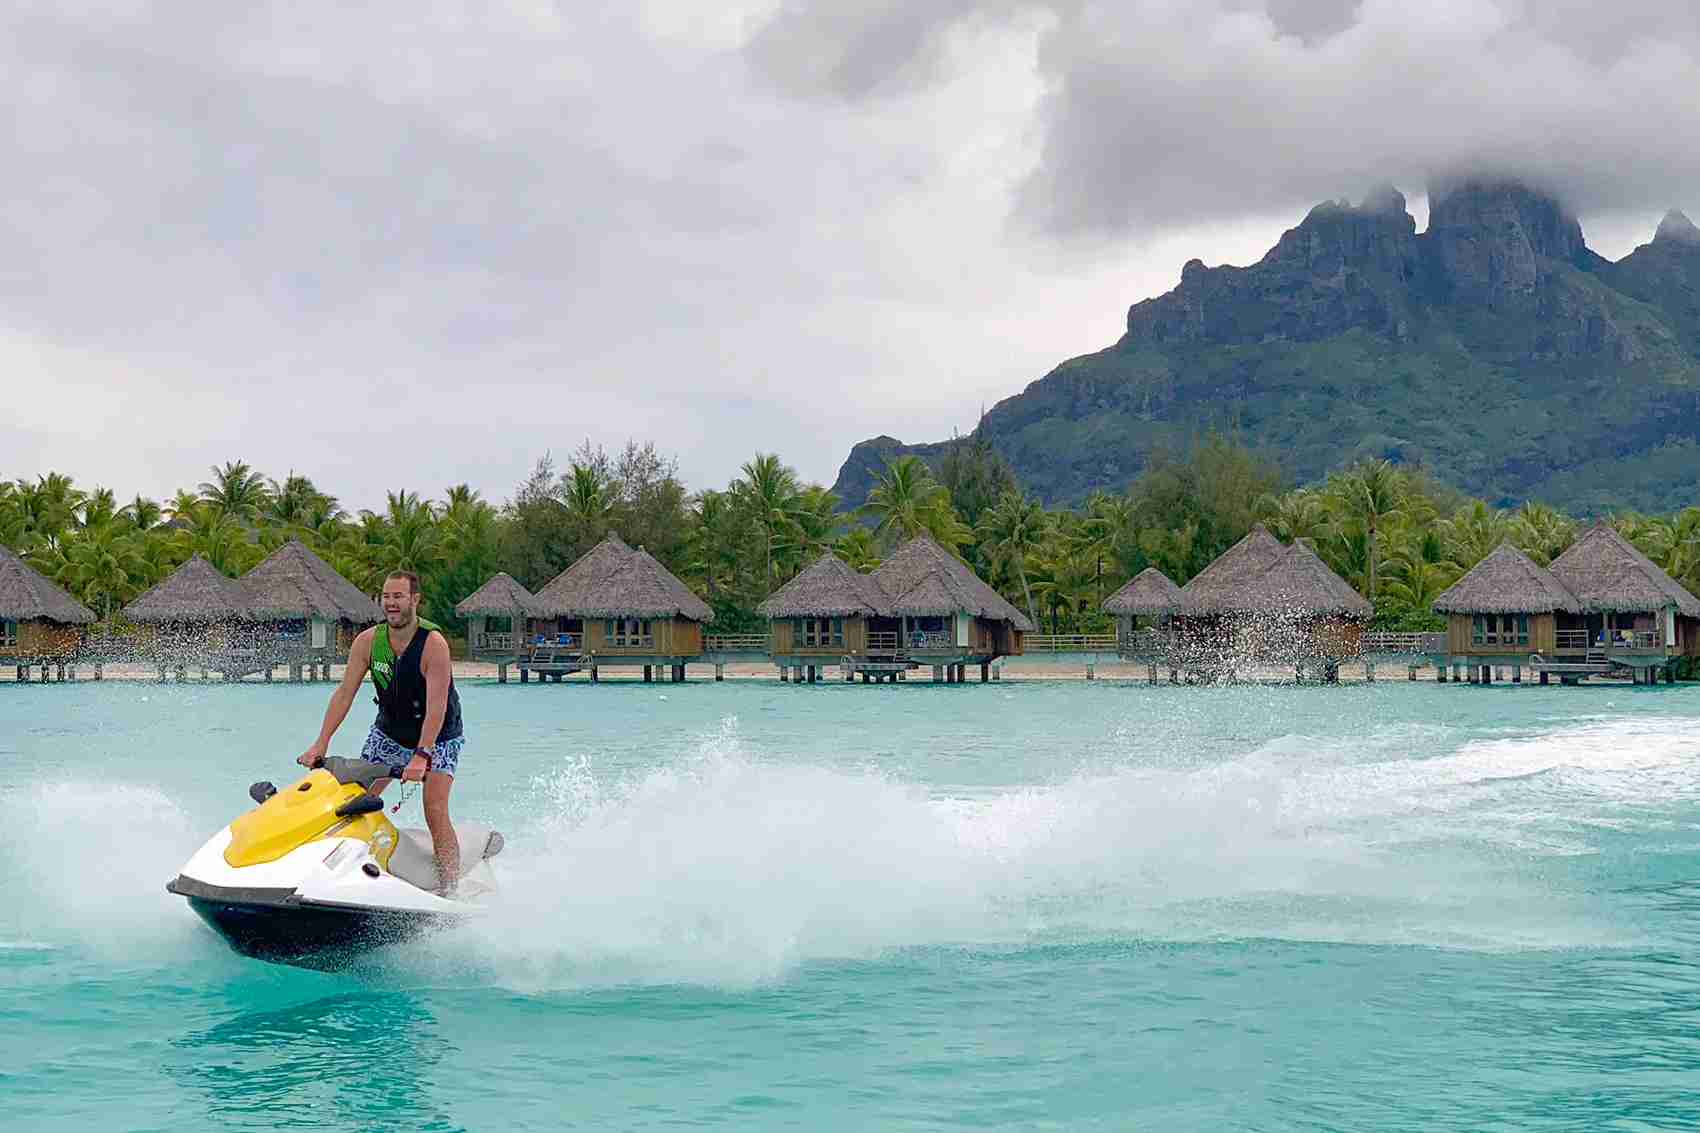 Yes, you can rent jet skis in Bora Bora (Photo by Zach Honig / The Points Guy)